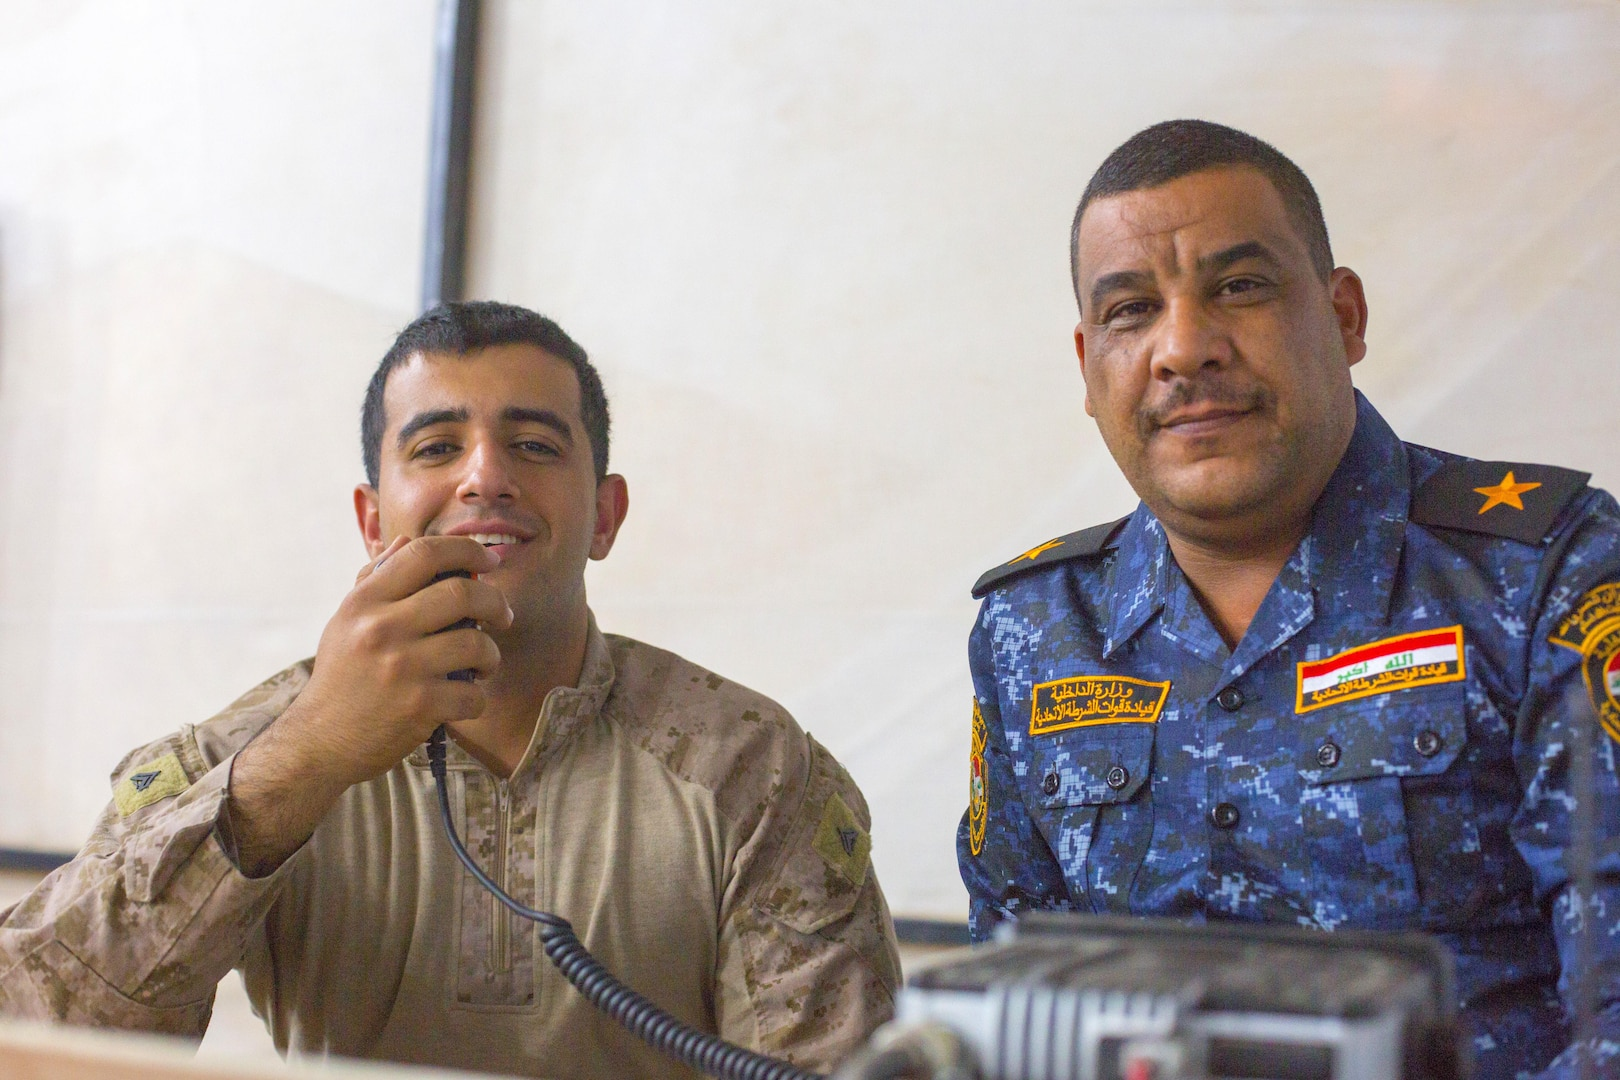 U.S. Marine Corps Cpl. Ali Mohammed, left, a member of the 3rd Battalion, 7th Marine Regiment, Special Purpose Marine Ground Air Task Force – Crisis Response – Central Command advise and assist team, poses for a photo with a member of the Iraqi security forces his team advises, Oct. 23, 2016, at Qayyarah West Airfield, Iraq. The Marines, alongside Soldiers from the 1st Squadron, 75th Regiment of the U.S Army's 101st Airborne Division (Air Assault), are aiding the ISF as they retake territory from Islamic State of Iraq and the Levant. (U.S. Army photo by Spc. Christopher Brecht)